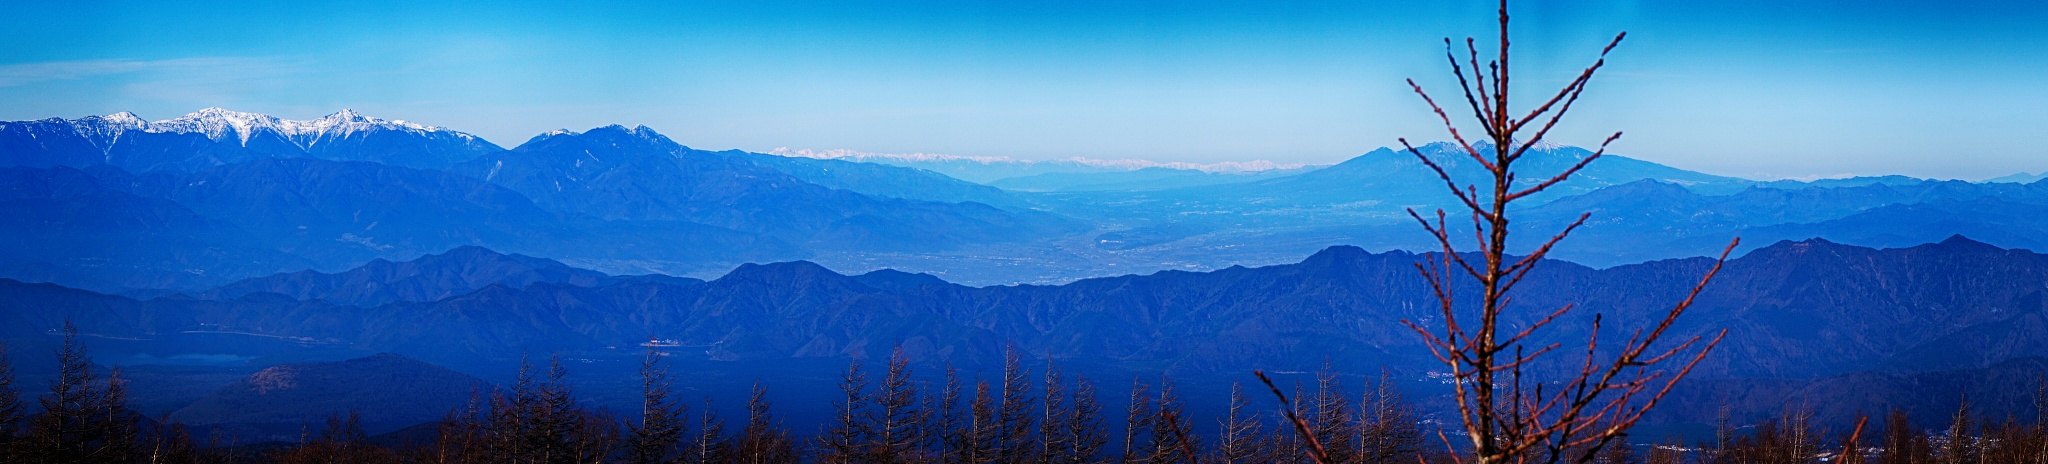 View from Fuji Mountain, Japan by Ele Hob